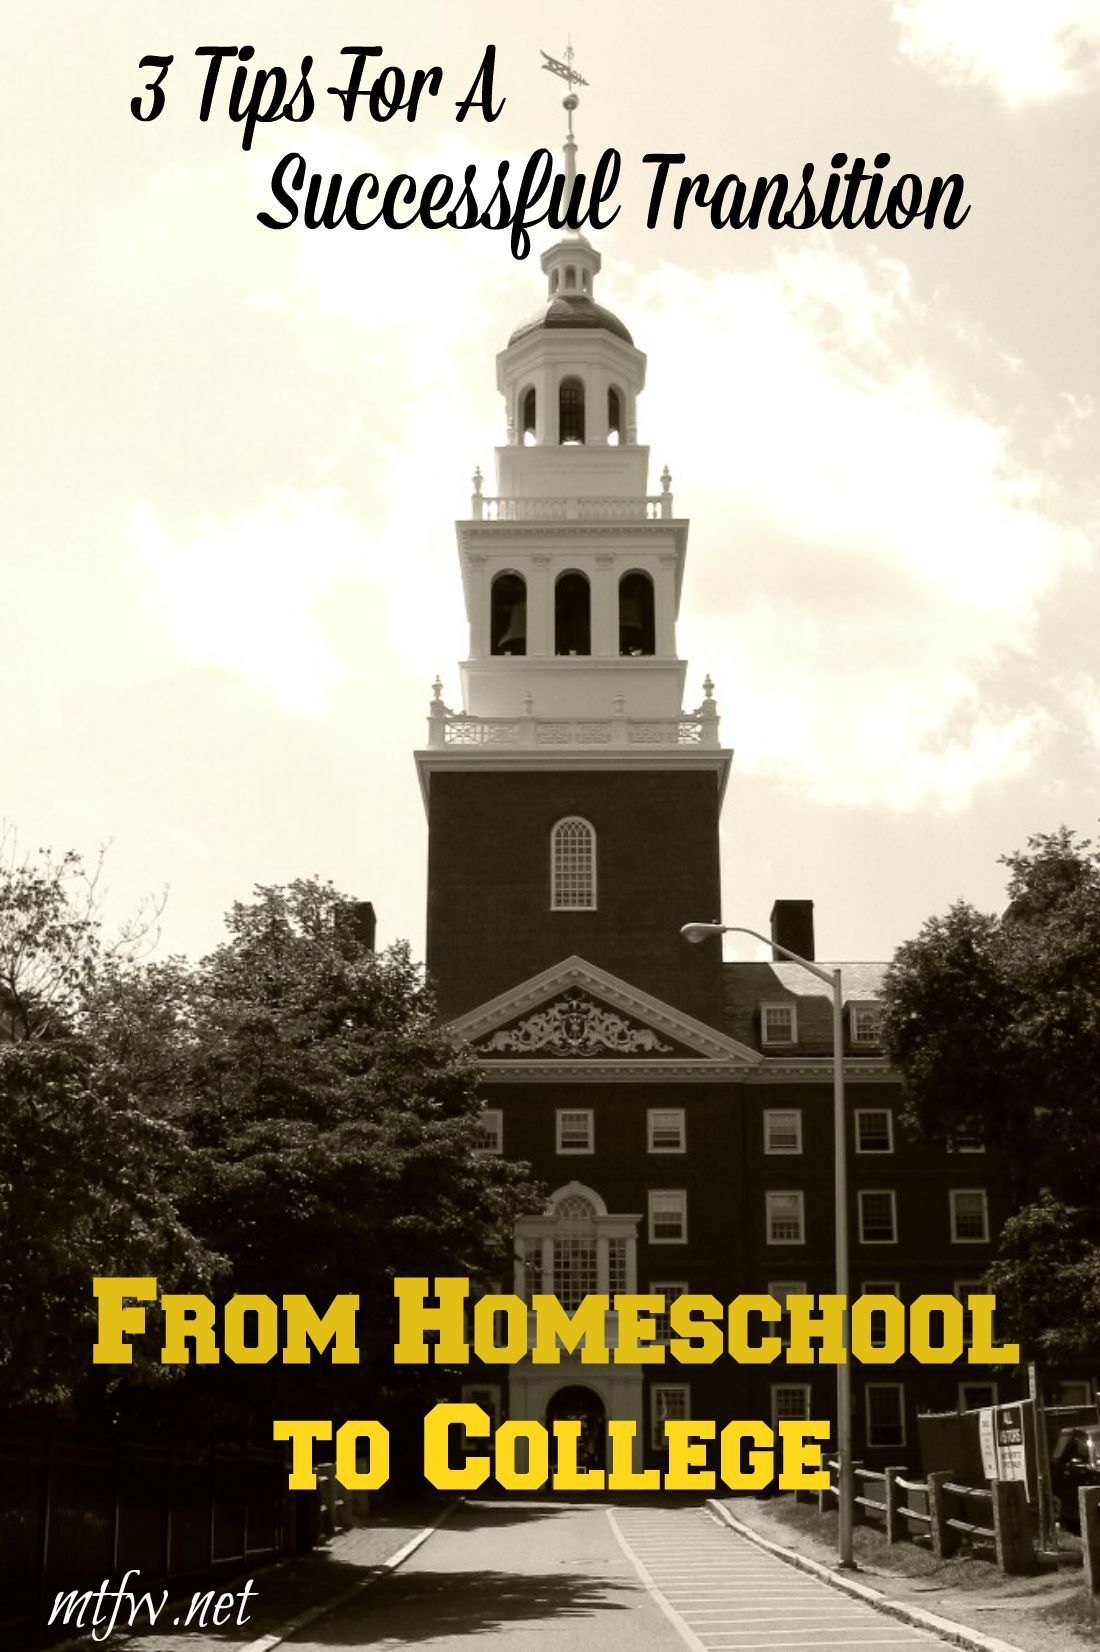 Easing The Transition From Homeschool To College